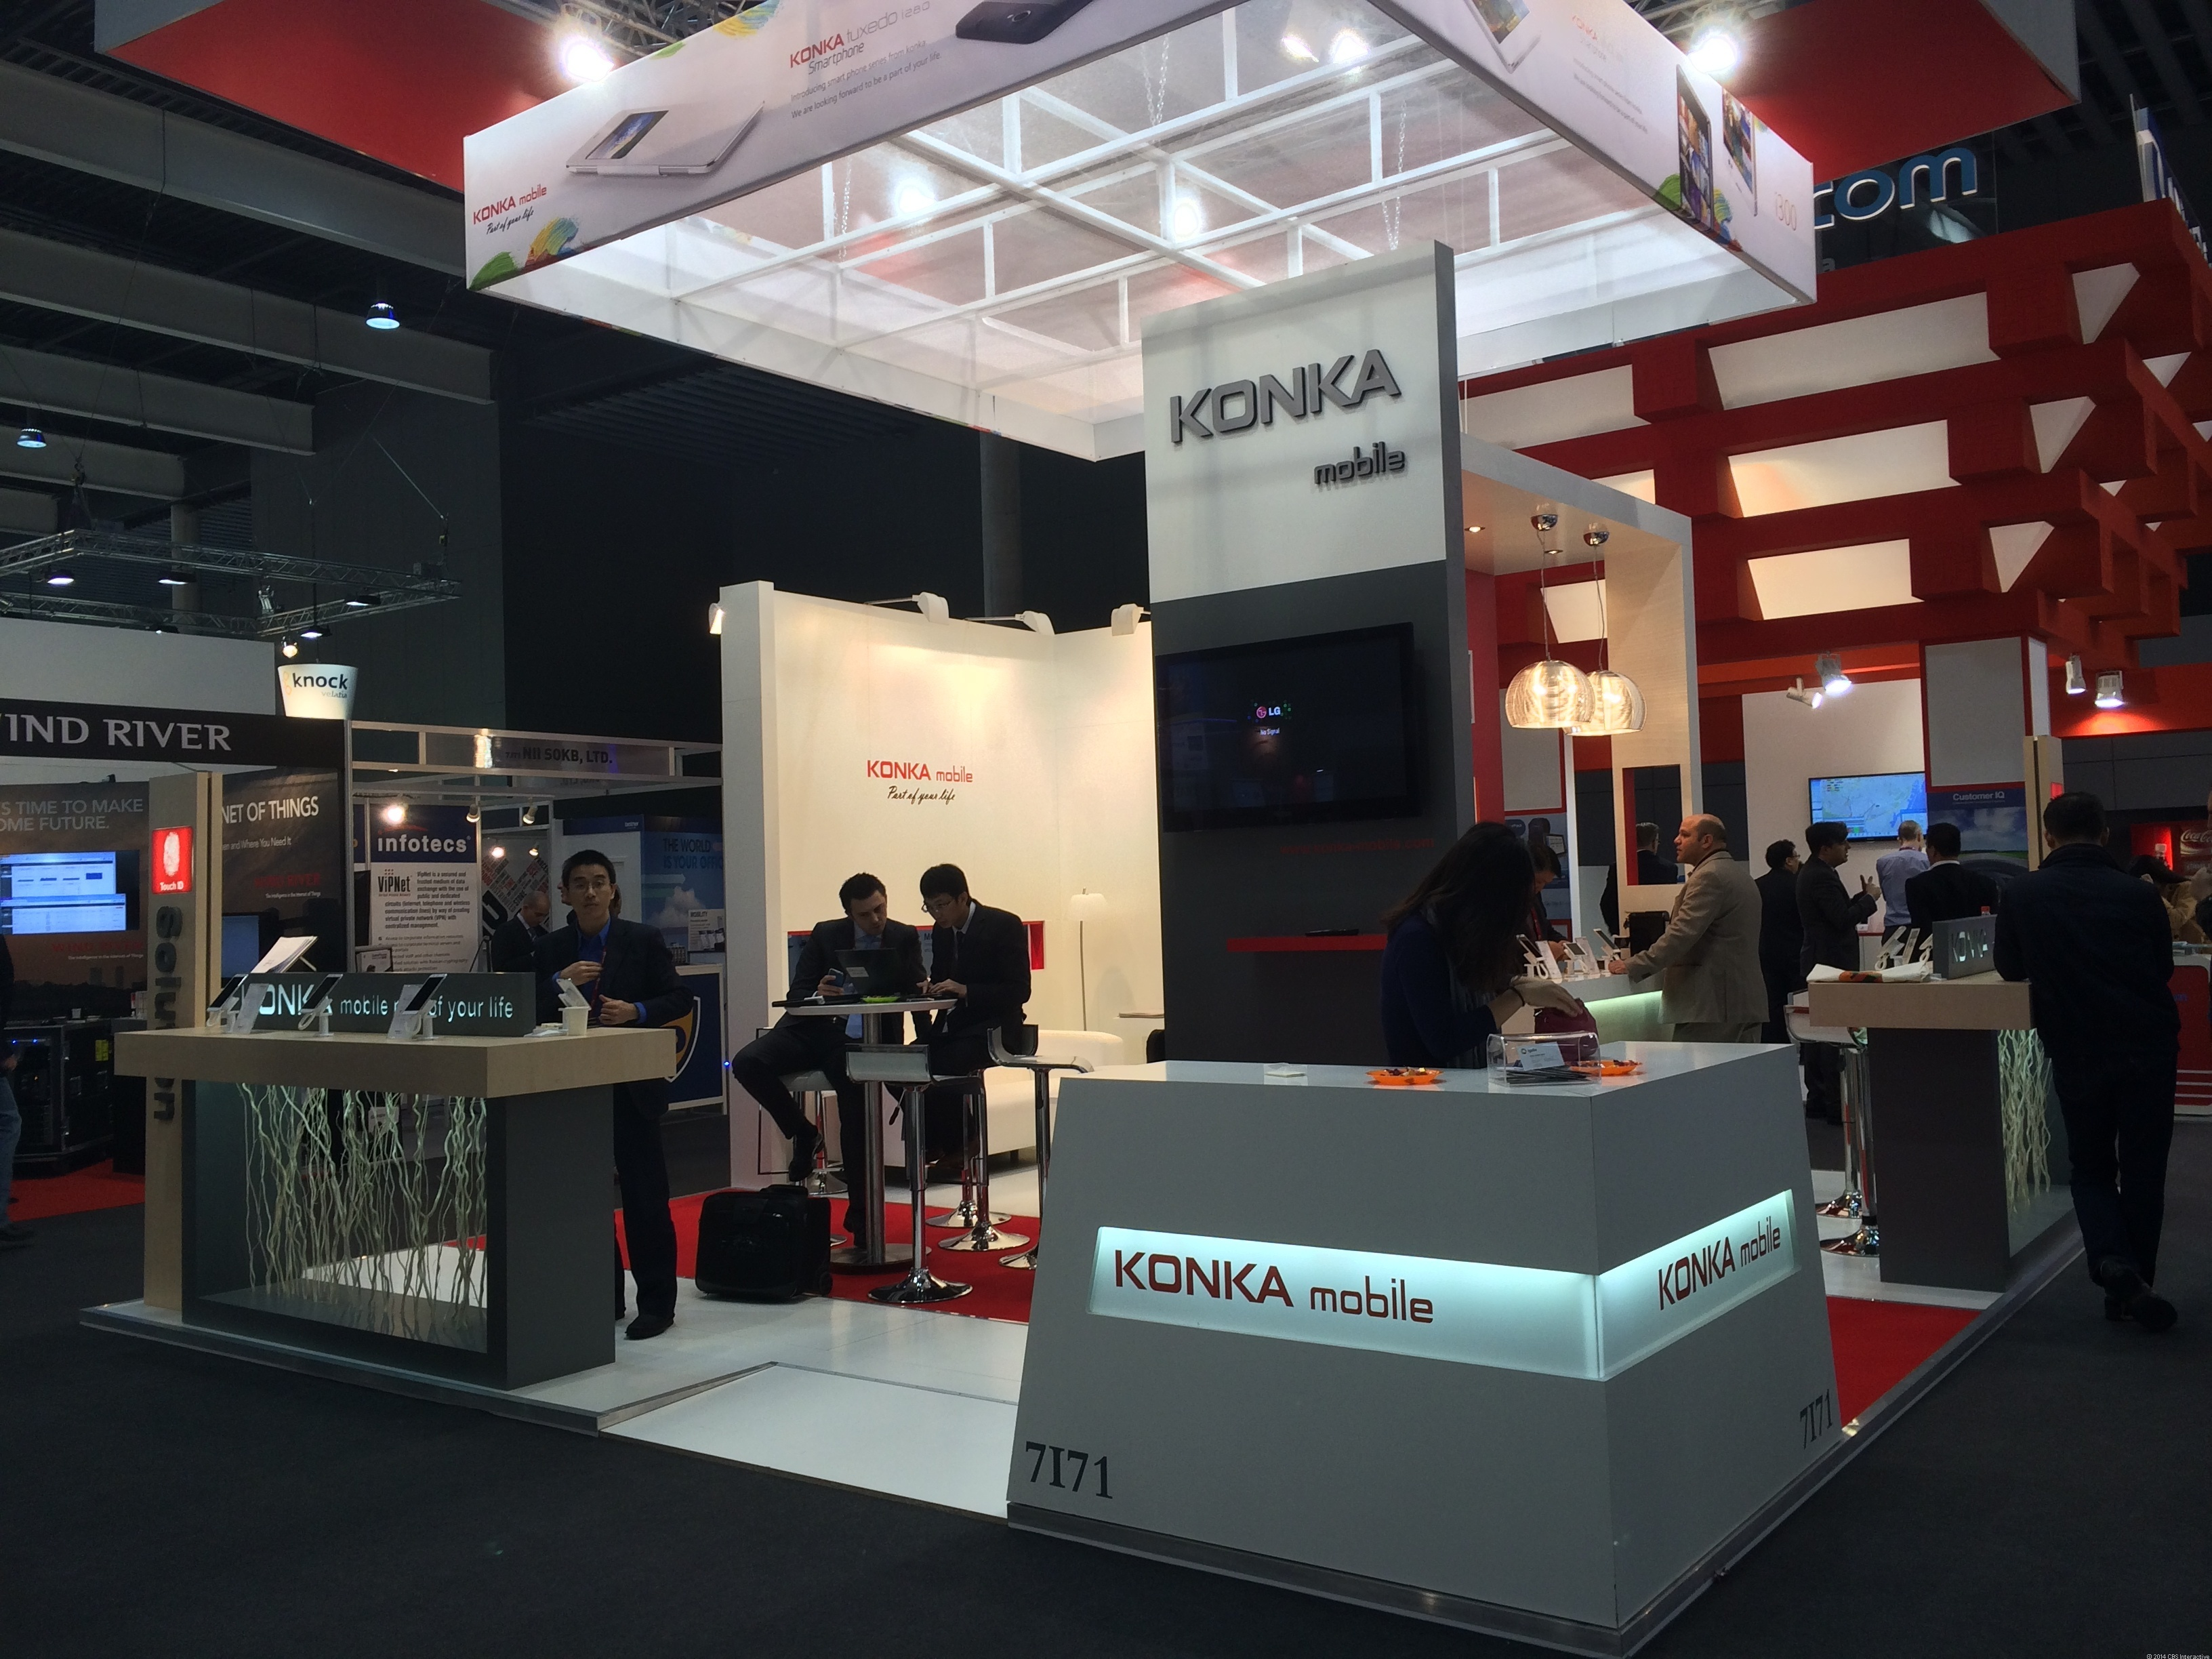 Based in Shenzhen, China, Konka Mobile isn't widely distributed around the world, but if you live in India, you've probably heard of this brand.